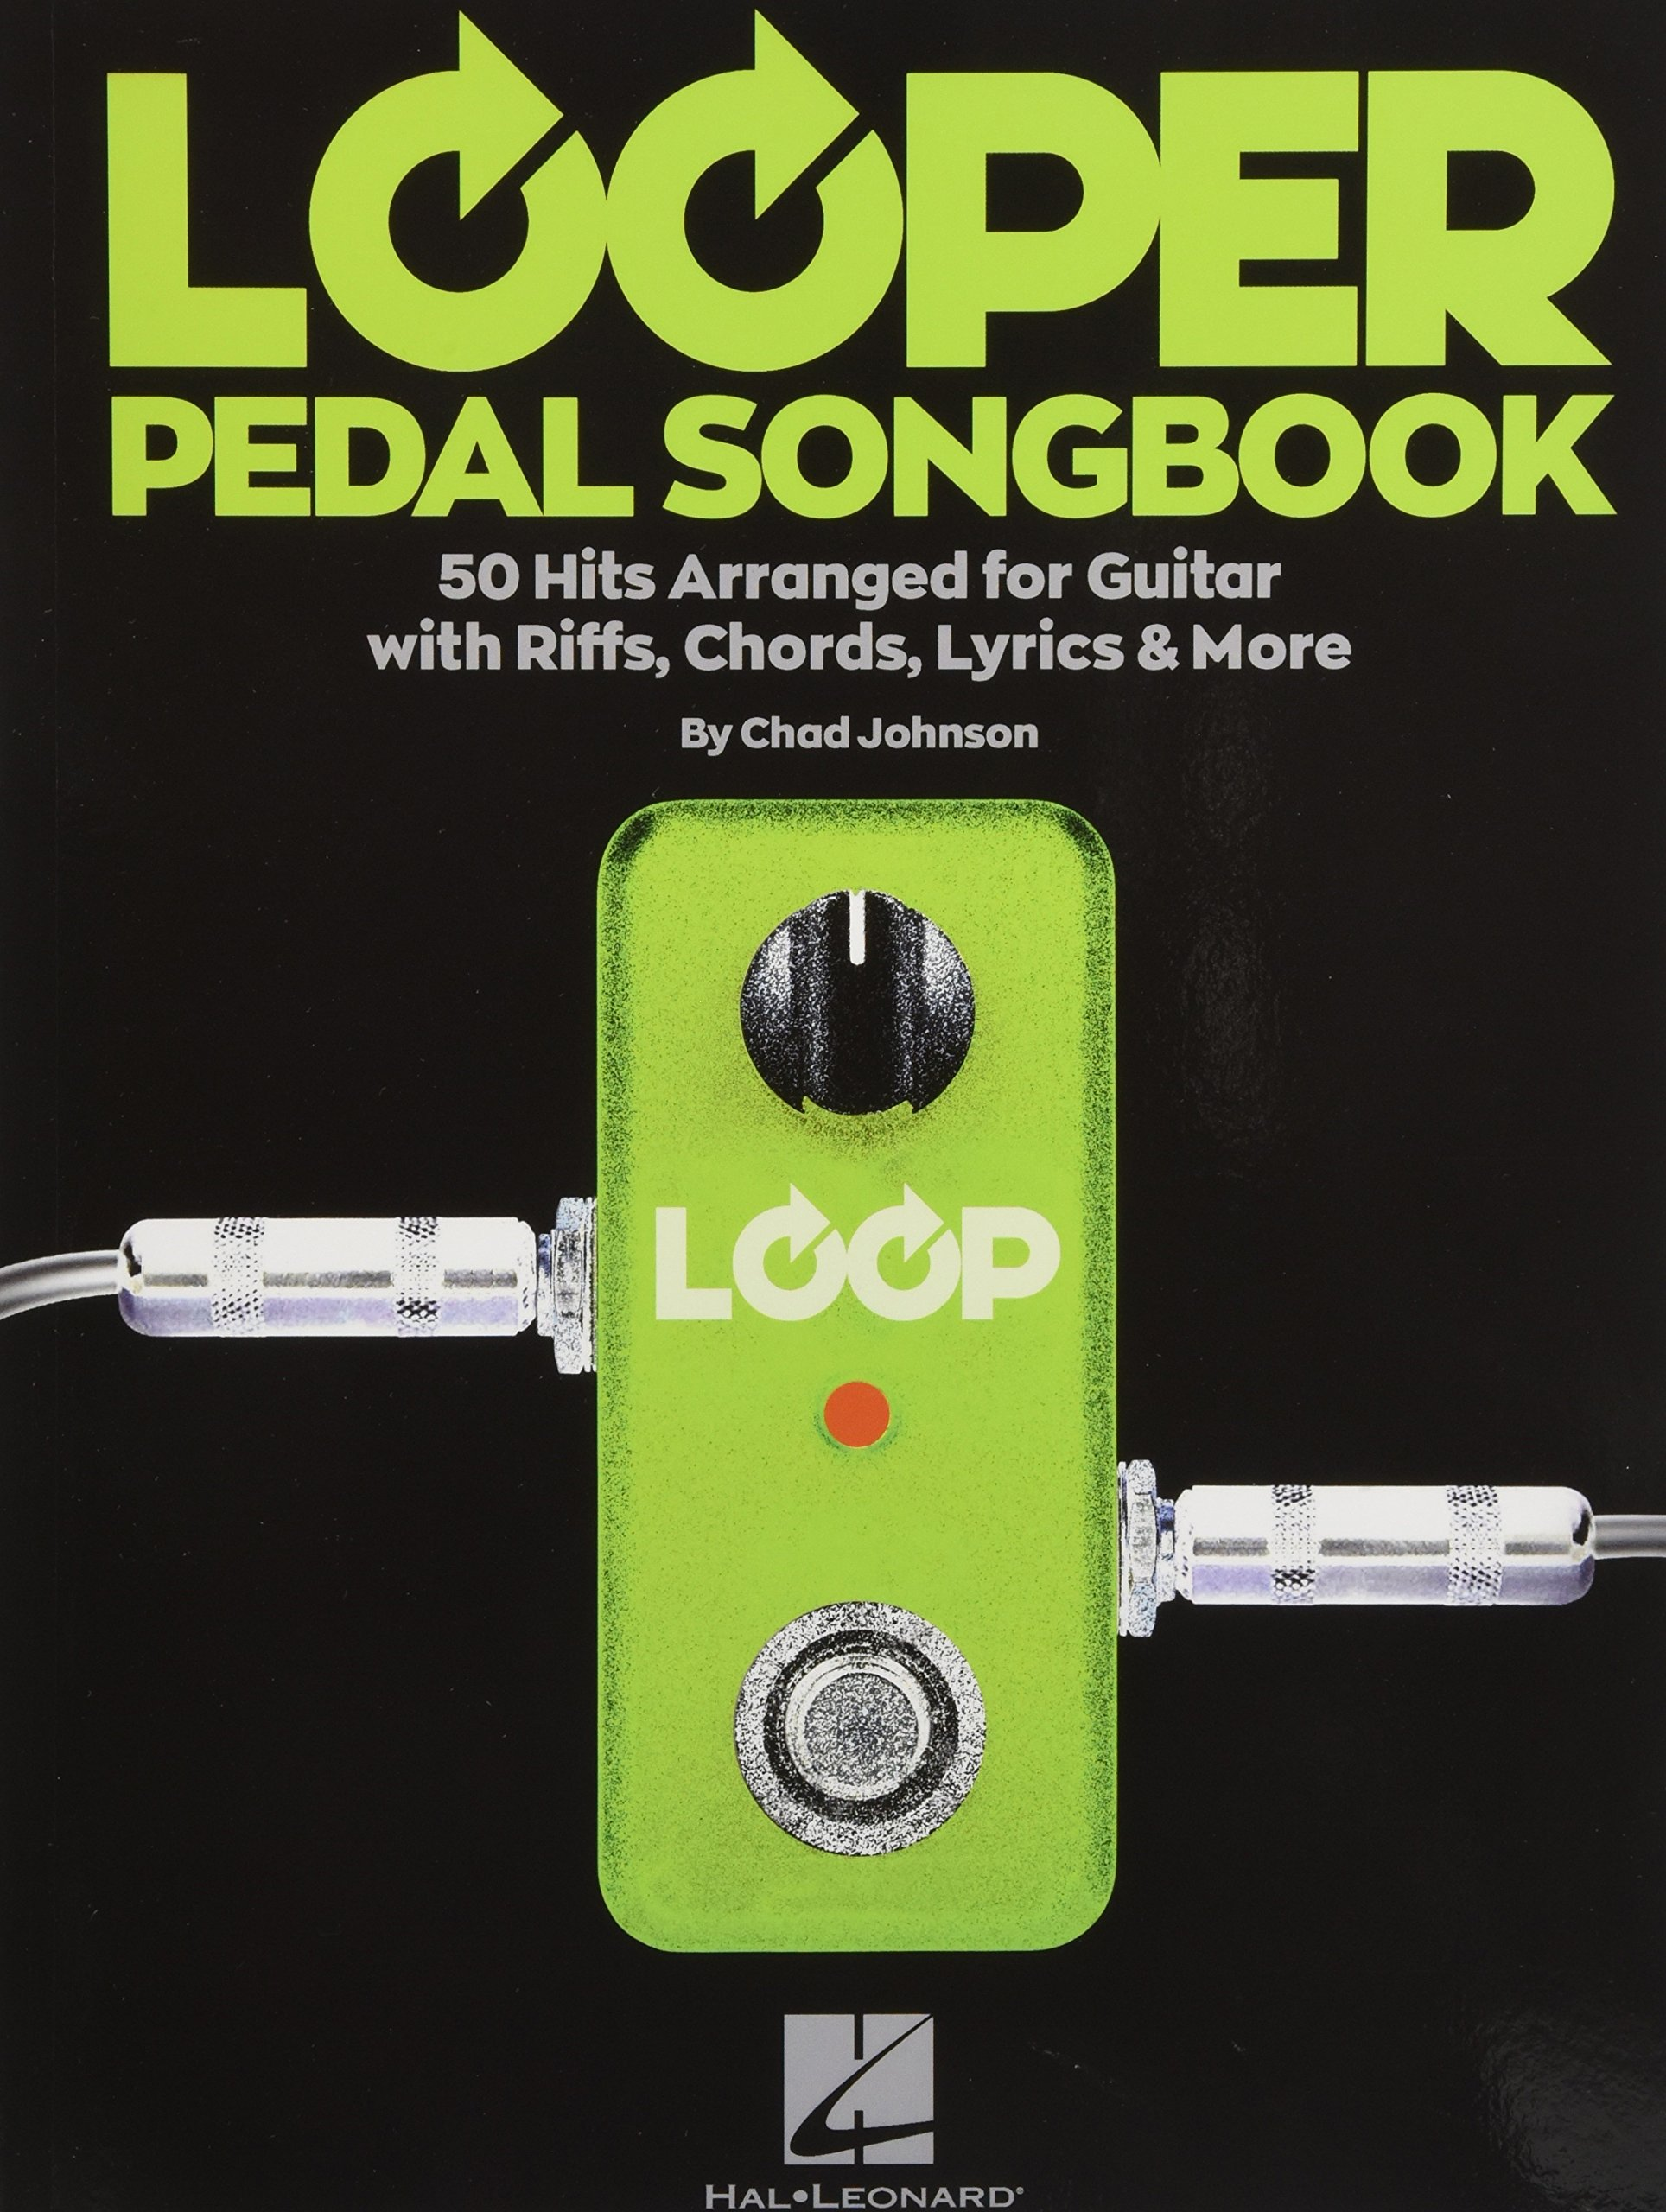 Looper Pedal Songbook 50 Hits Arranged For Guitar With Riffs